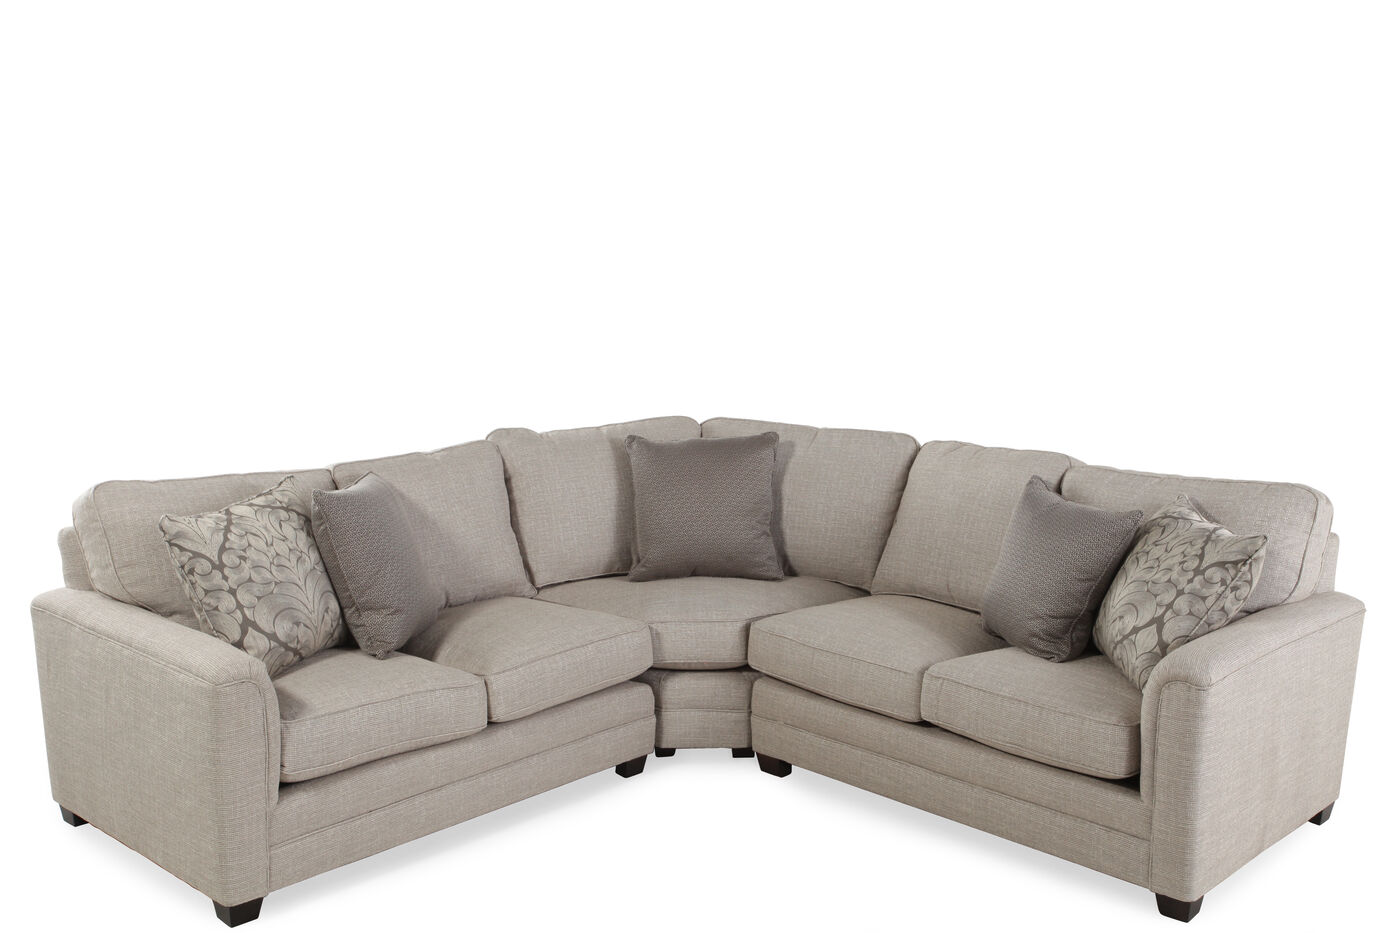 Sam moore raleigh 3 piece sectional mathis brothers for Sectional sofas raleigh